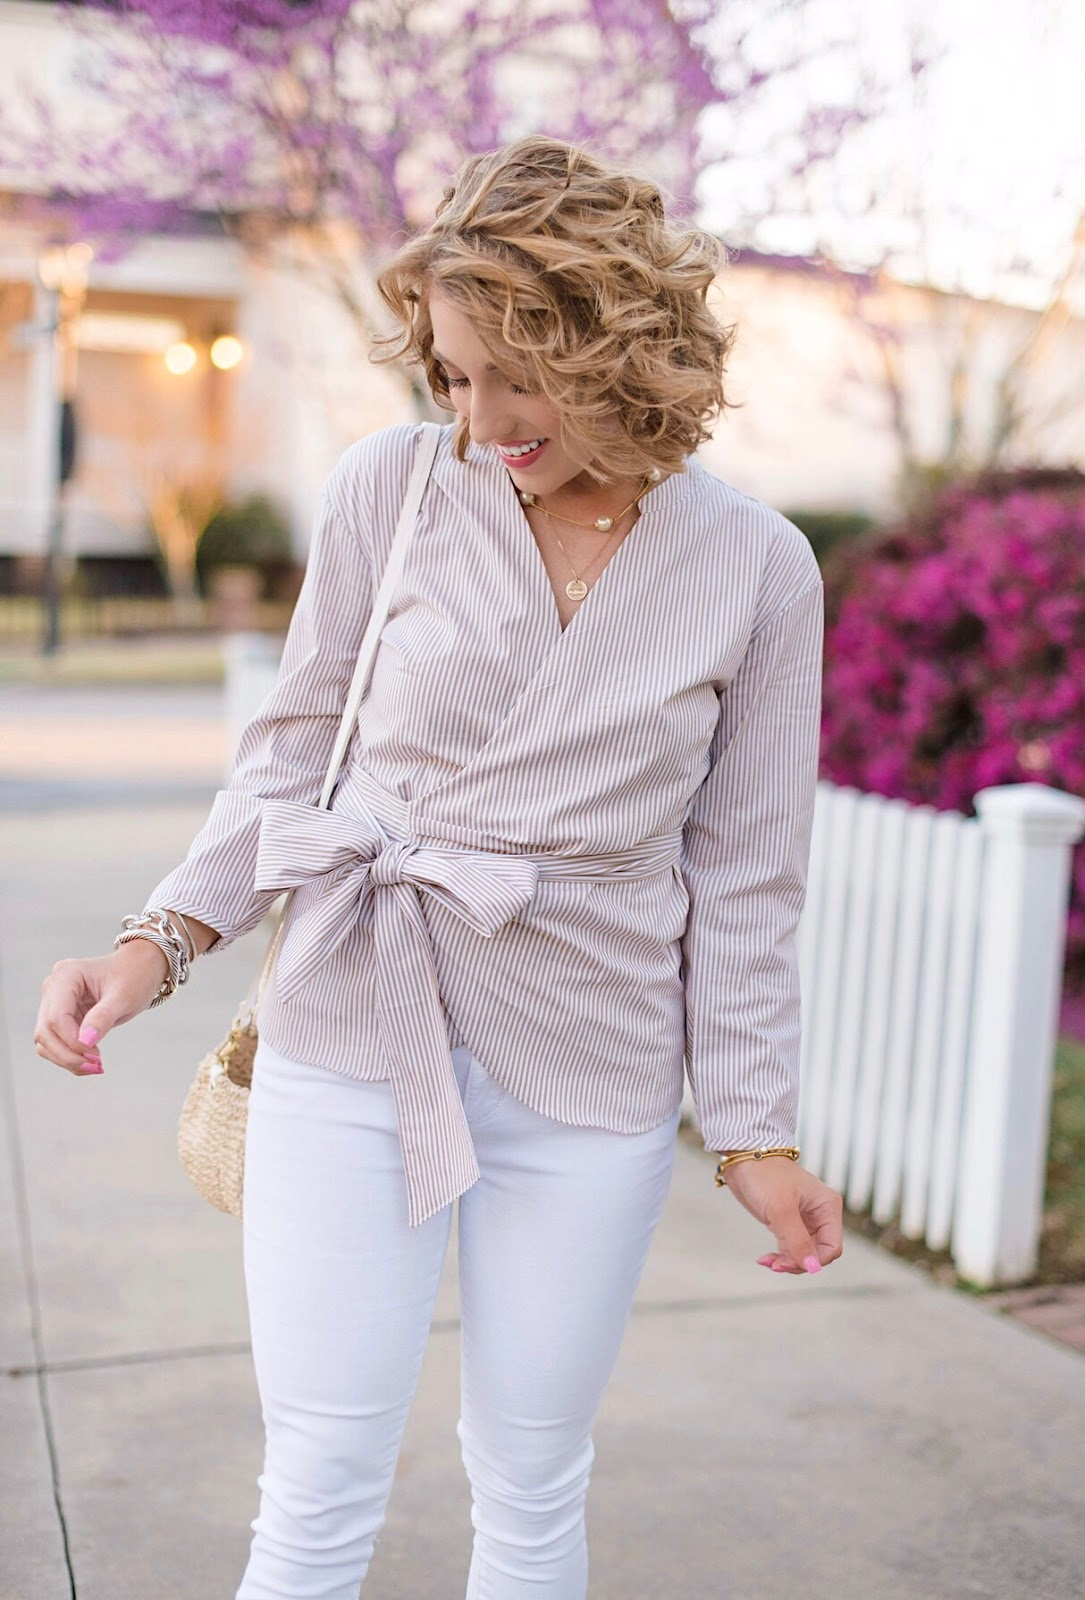 Spring Style J.Crew Wrap Top - Click through for the full post on Something Delightful Blog